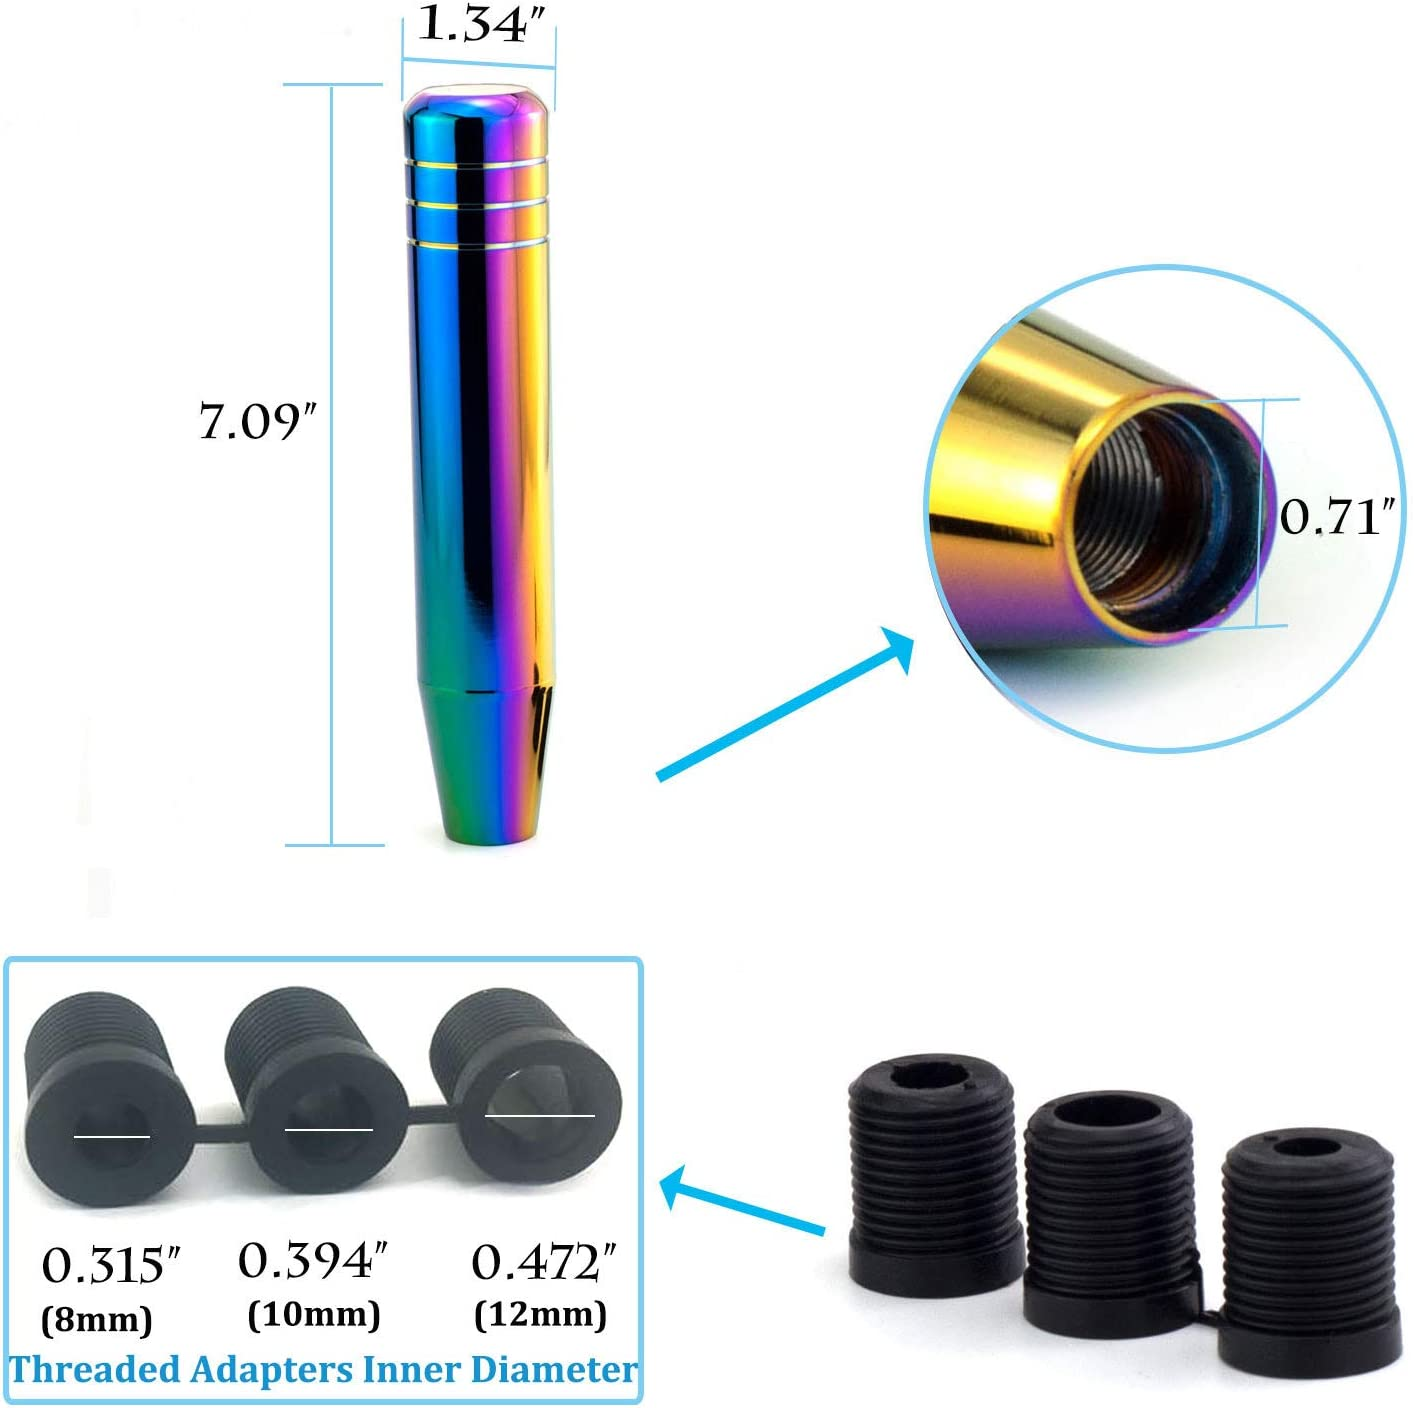 """Thruifo 7.09\"""" Gear Stick Shifter Knobs, Long Weighted Car Shift Head Knob with Aluminum Alloy Fit Most Manual Automatic Vehicles, Multicoloured 615CTCU36cL"""